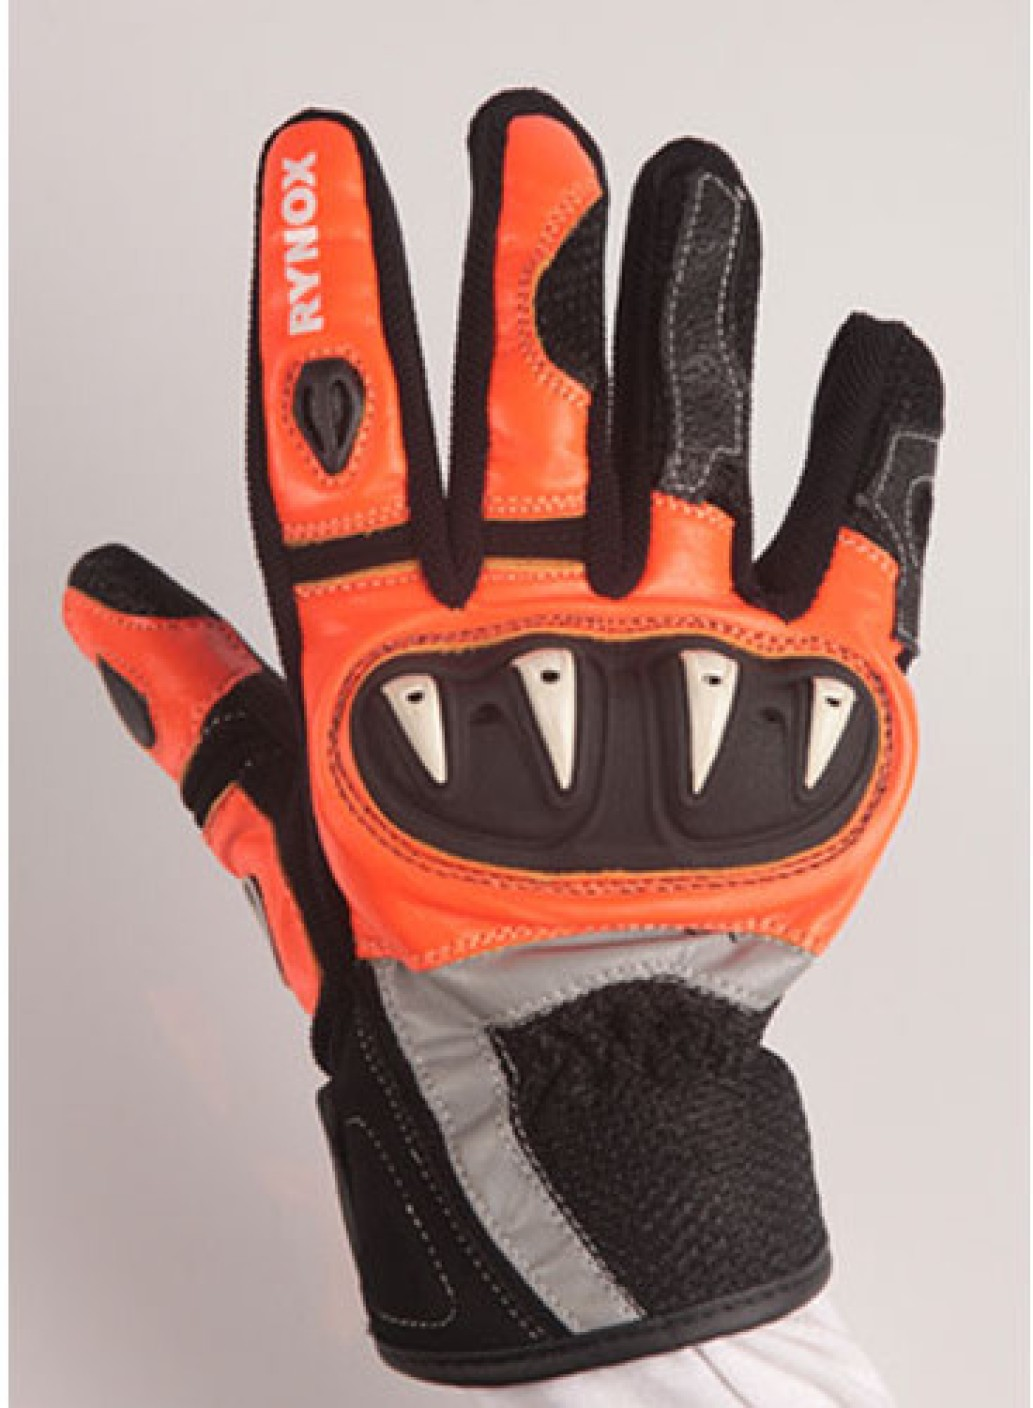 Motorcycle gloves bangalore - Probiker Leather Motorcycle Gloves Black L In Car Motorbike